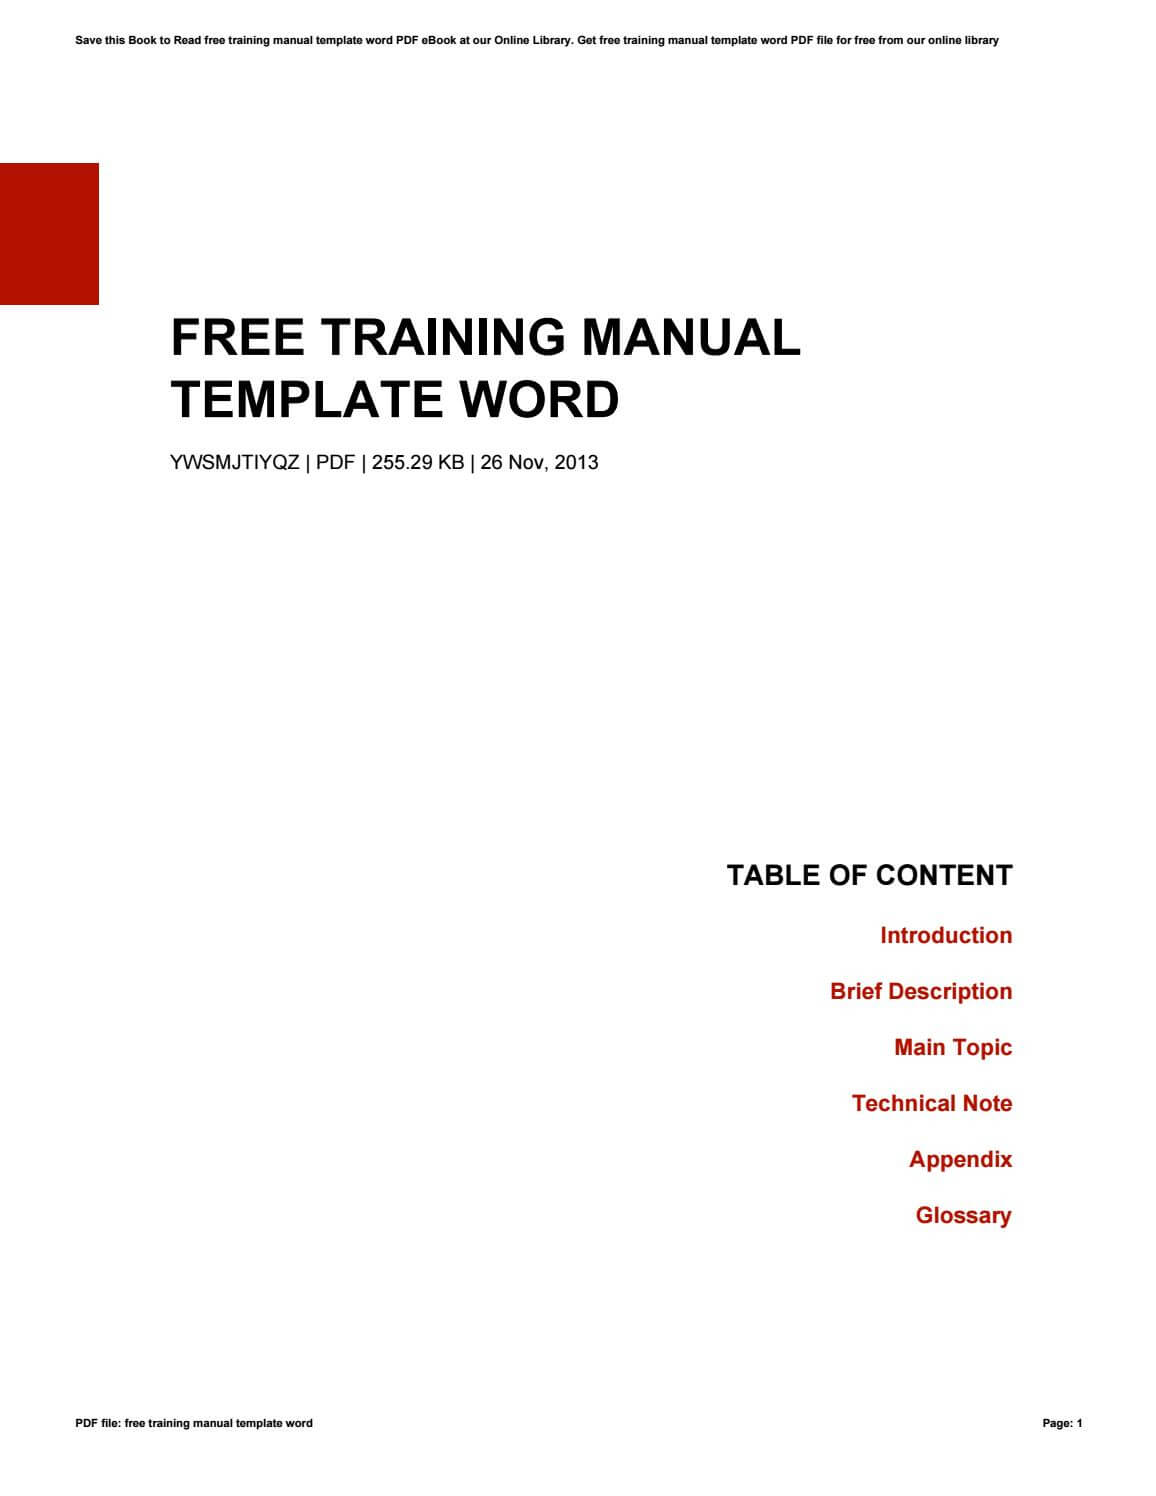 Free Training Manual Template Wordkazelink257 – Issuu For Training Documentation Template Word